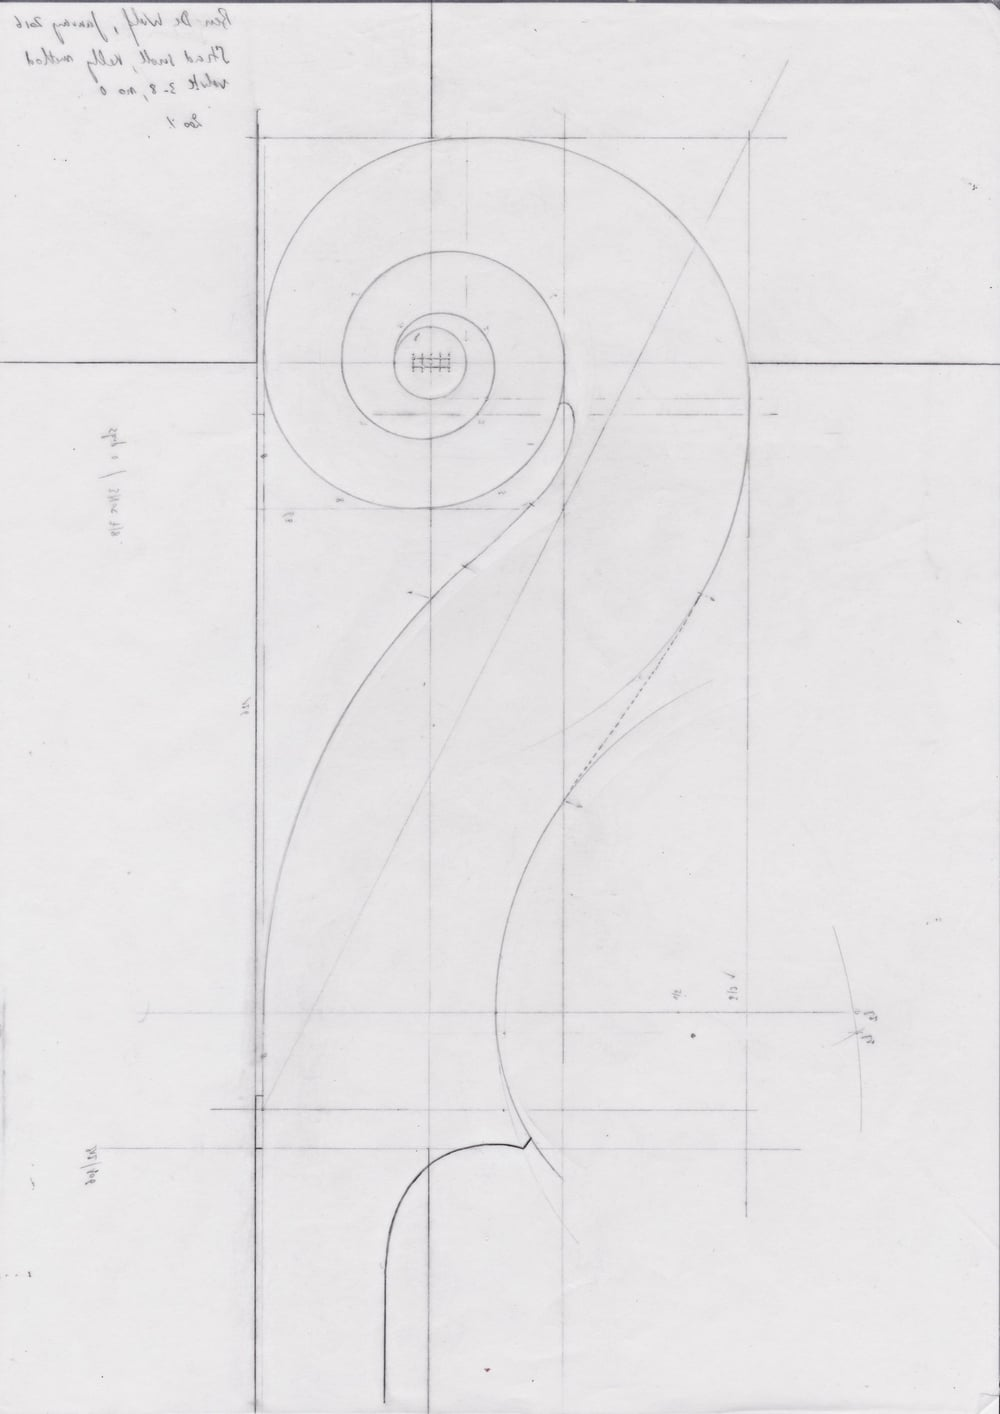 Kevin Kelly scroll design method (no 0; 3/8) drawn by Ben